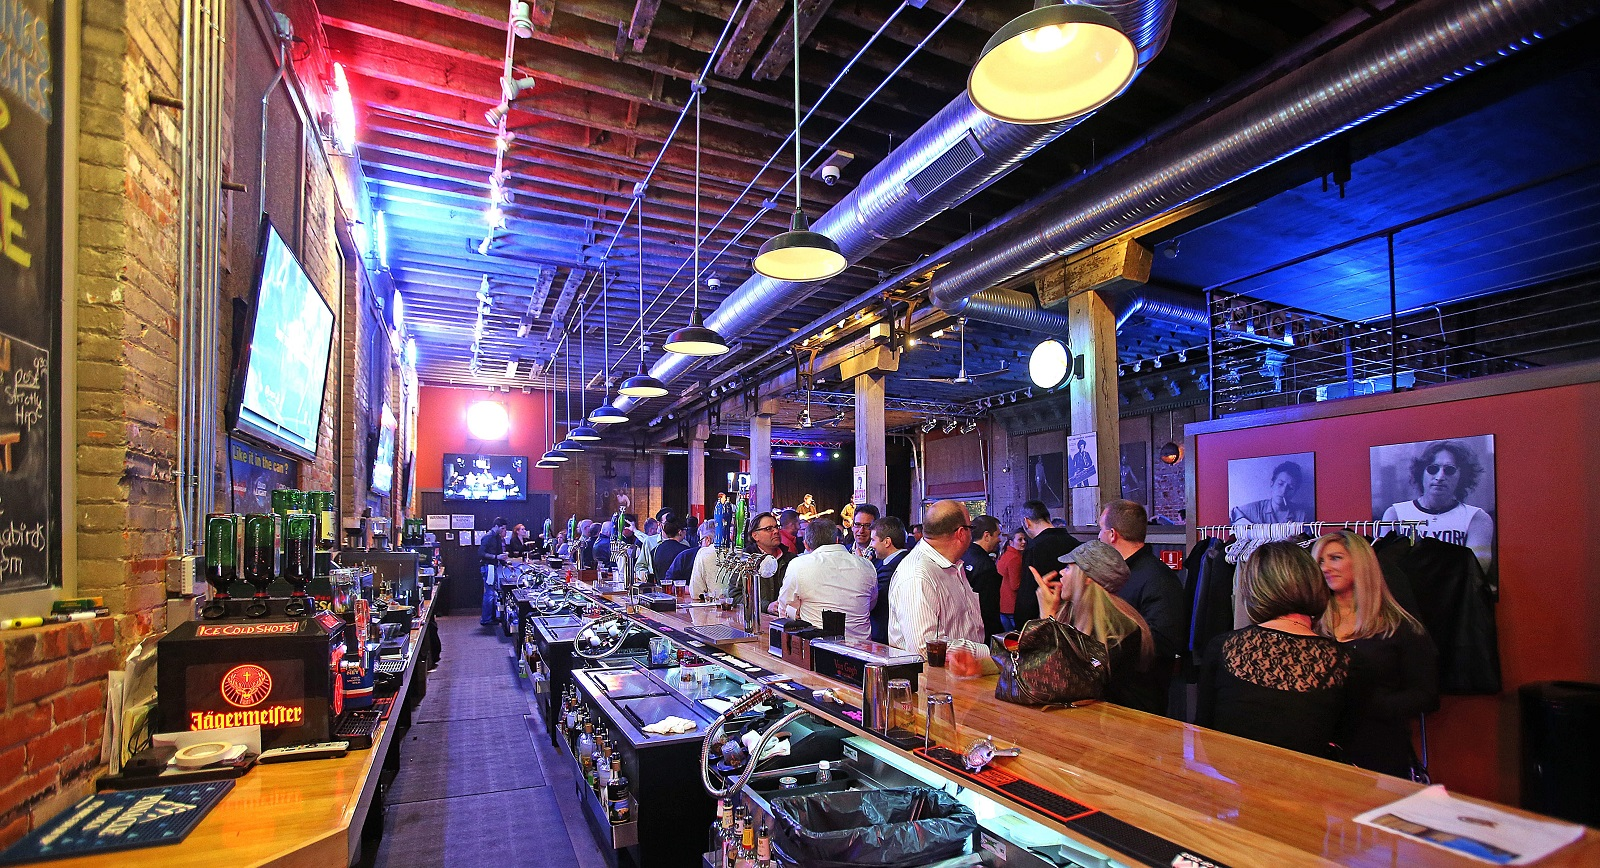 A view of the bar in Buffalo Iron Works when it opened in 2013. The Cobblestone District bar hosts one of this week's Beer Matters events. (Robert Kirkham/Buffalo News file photo)